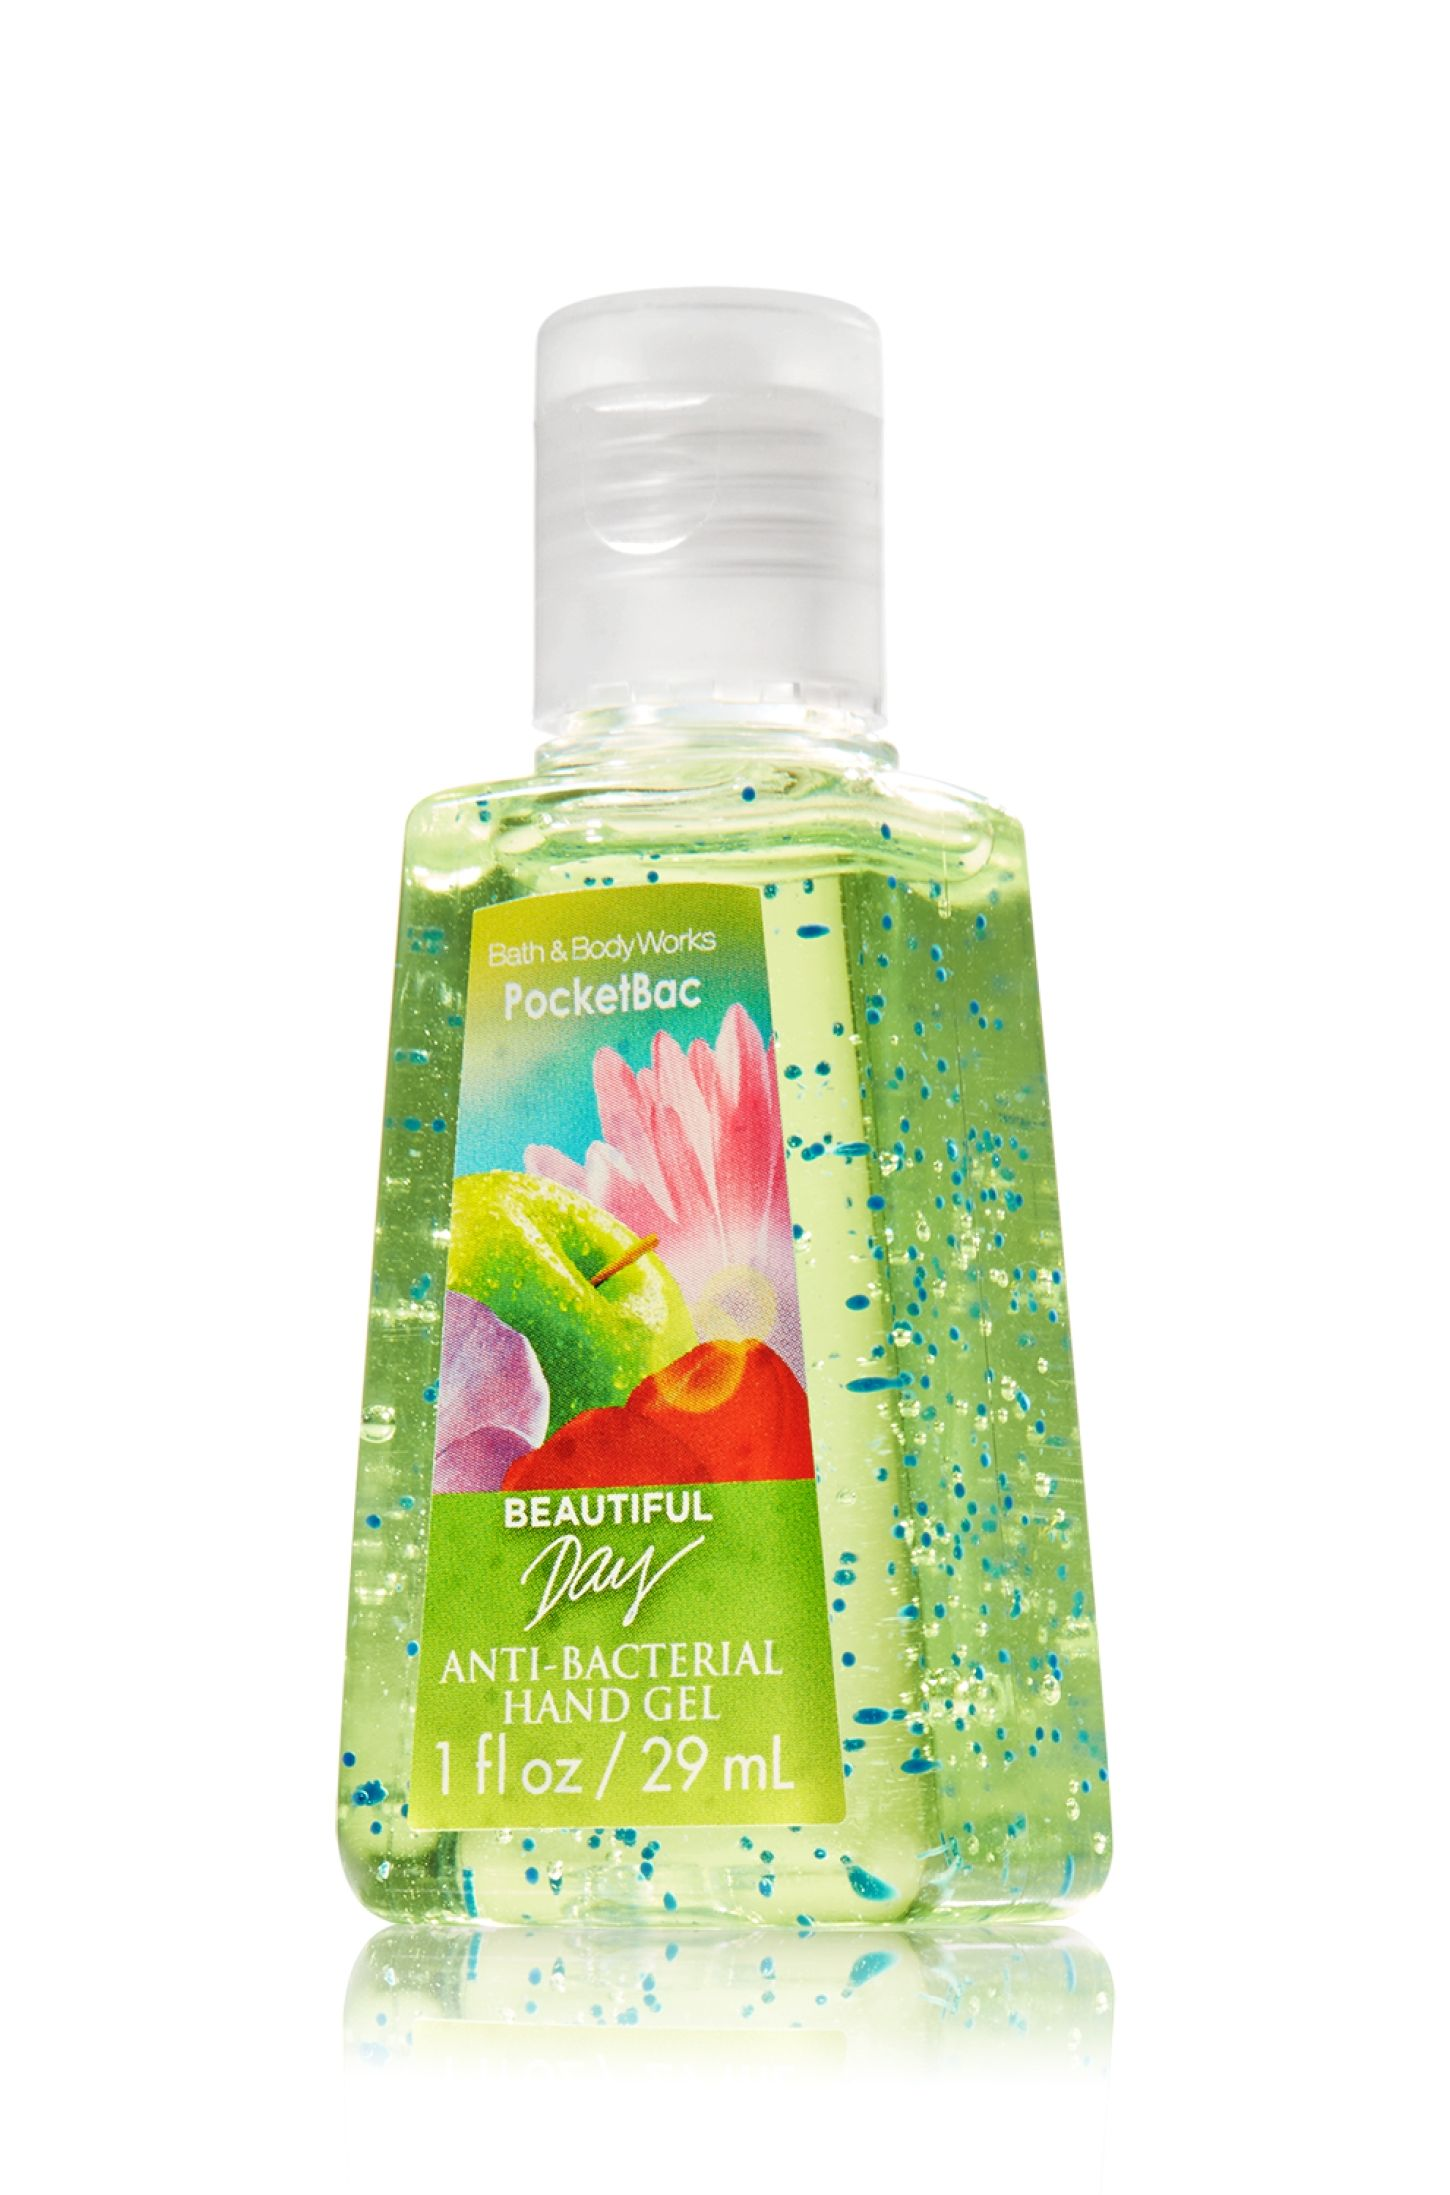 Beautiful Day Pocketbac Sanitizing Hand Gel Soap Sanitizer